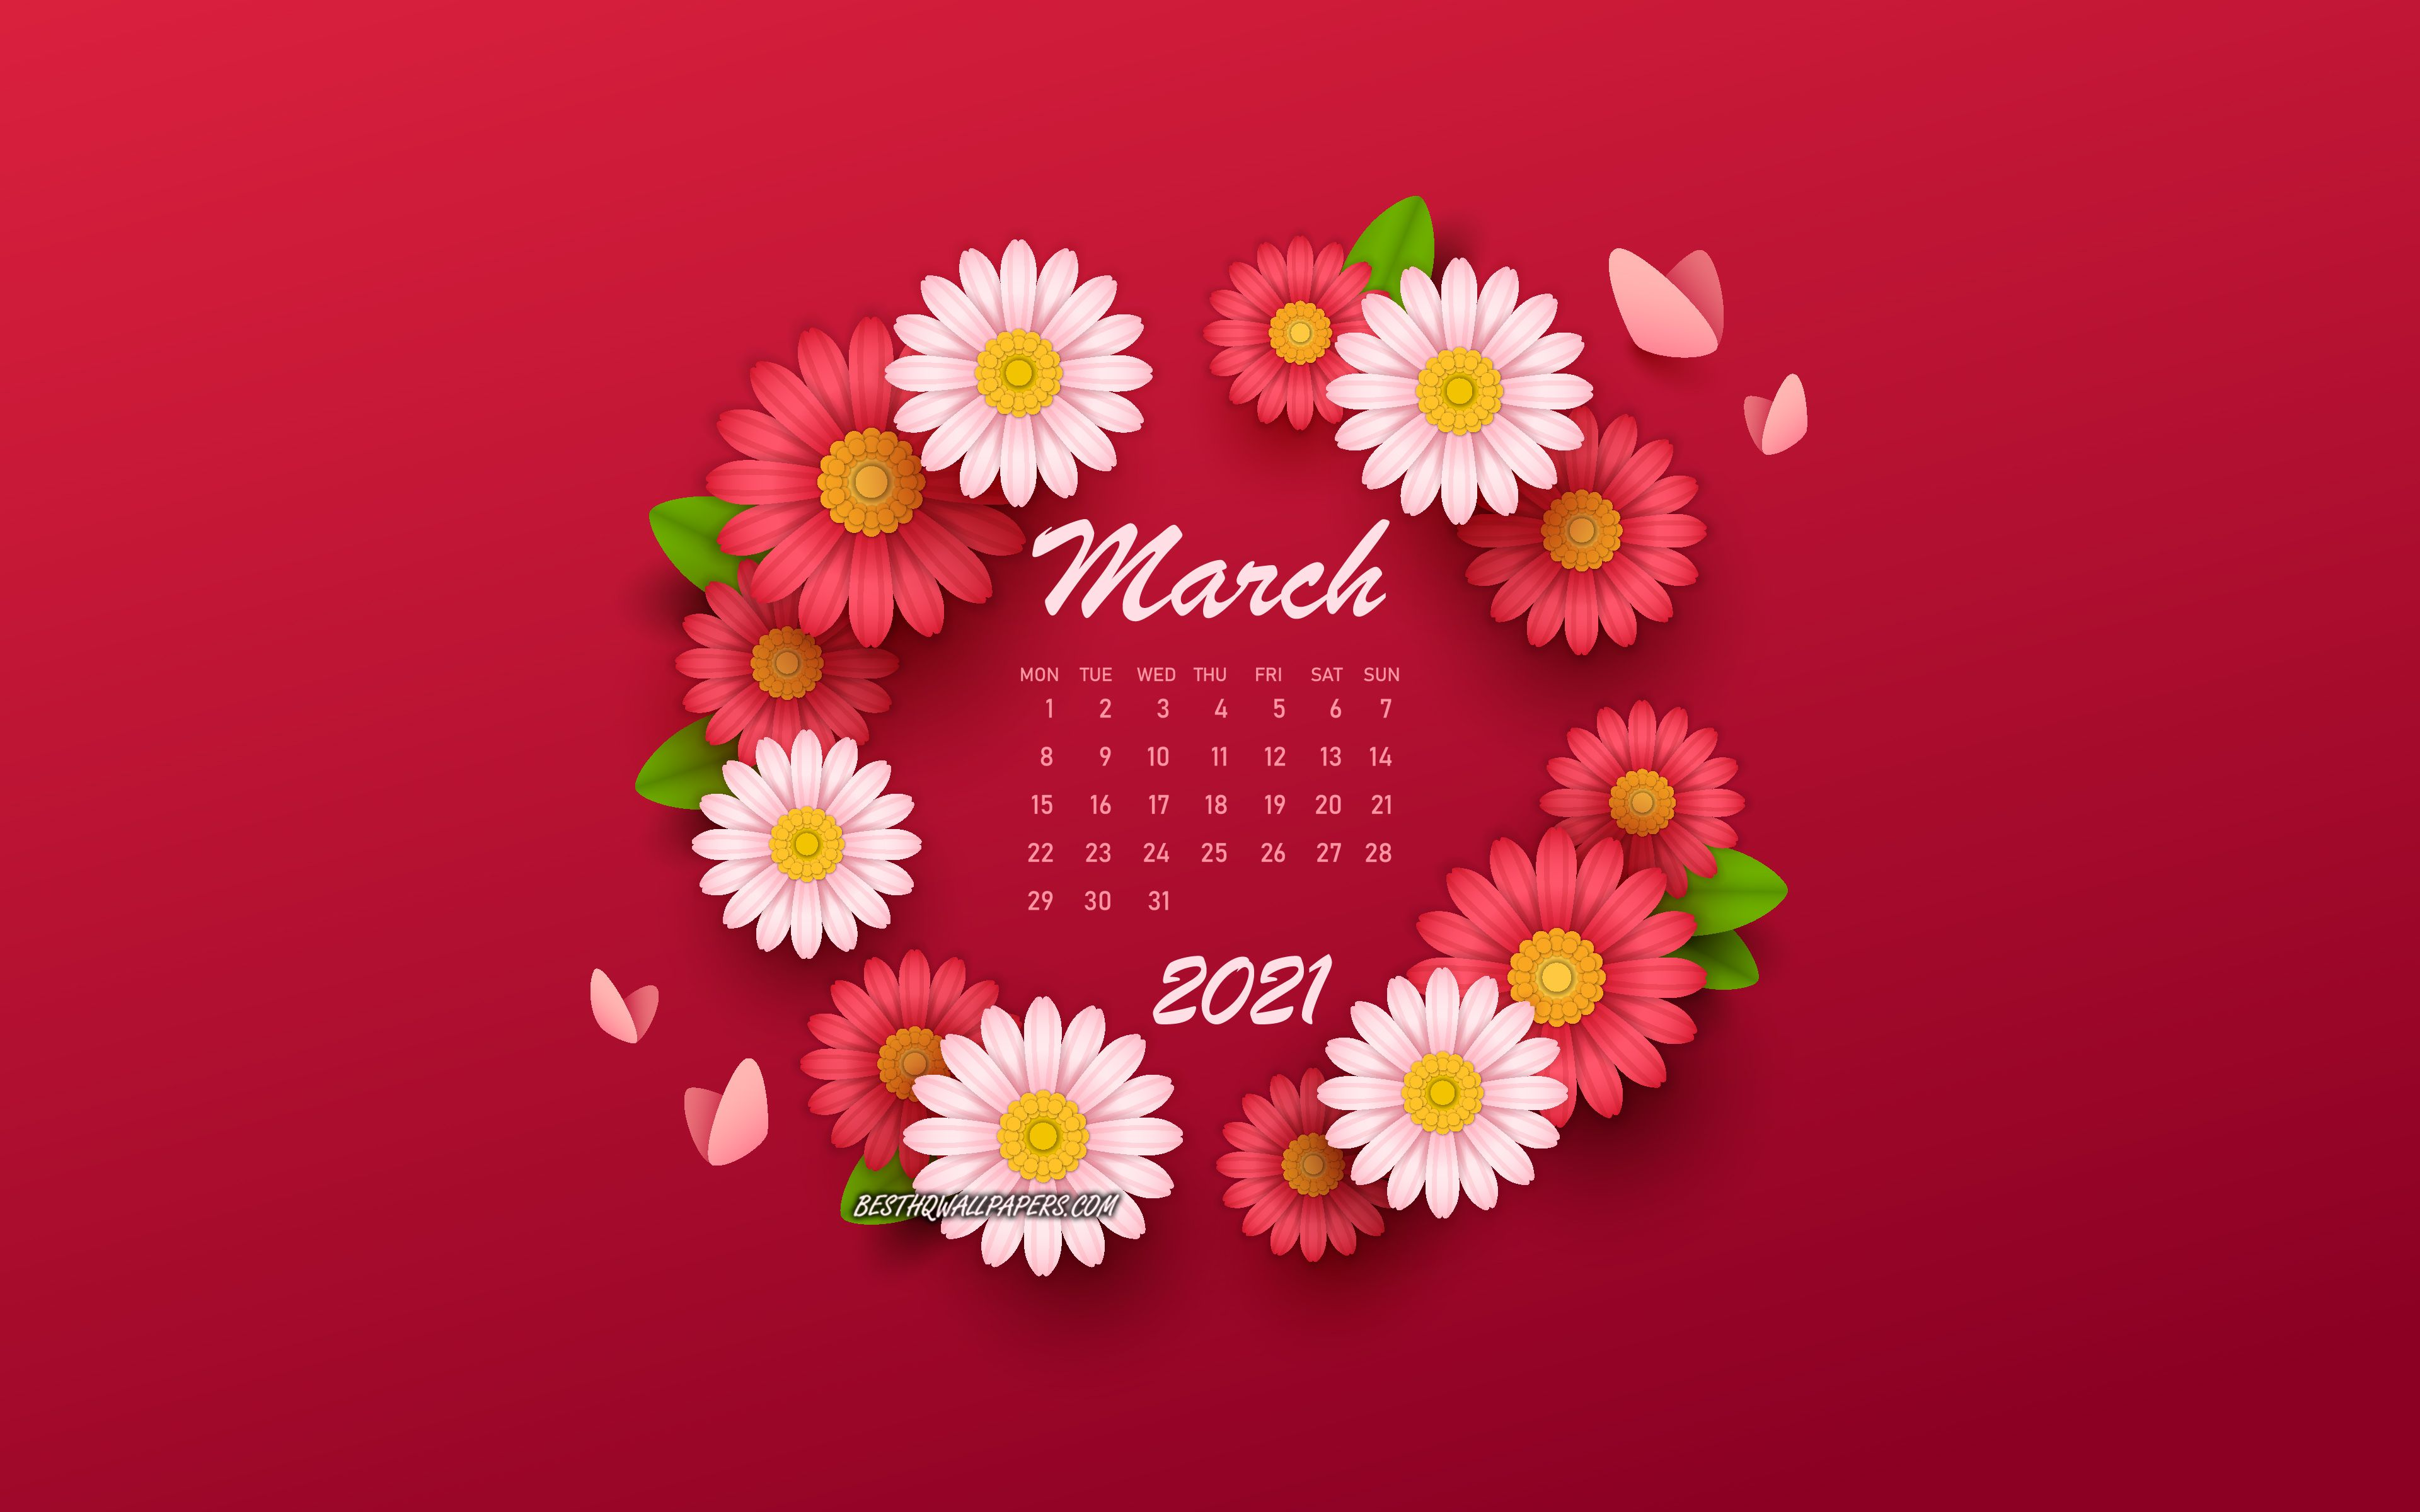 Download wallpapers 2021 March Calendar, backgrounds with flowers, spring flowers, 2021 spring calendars, March, 2021 calendars, March 2021 Calendar for desktop with resolution 3840x2400. High Quality HD pictures wallpapers